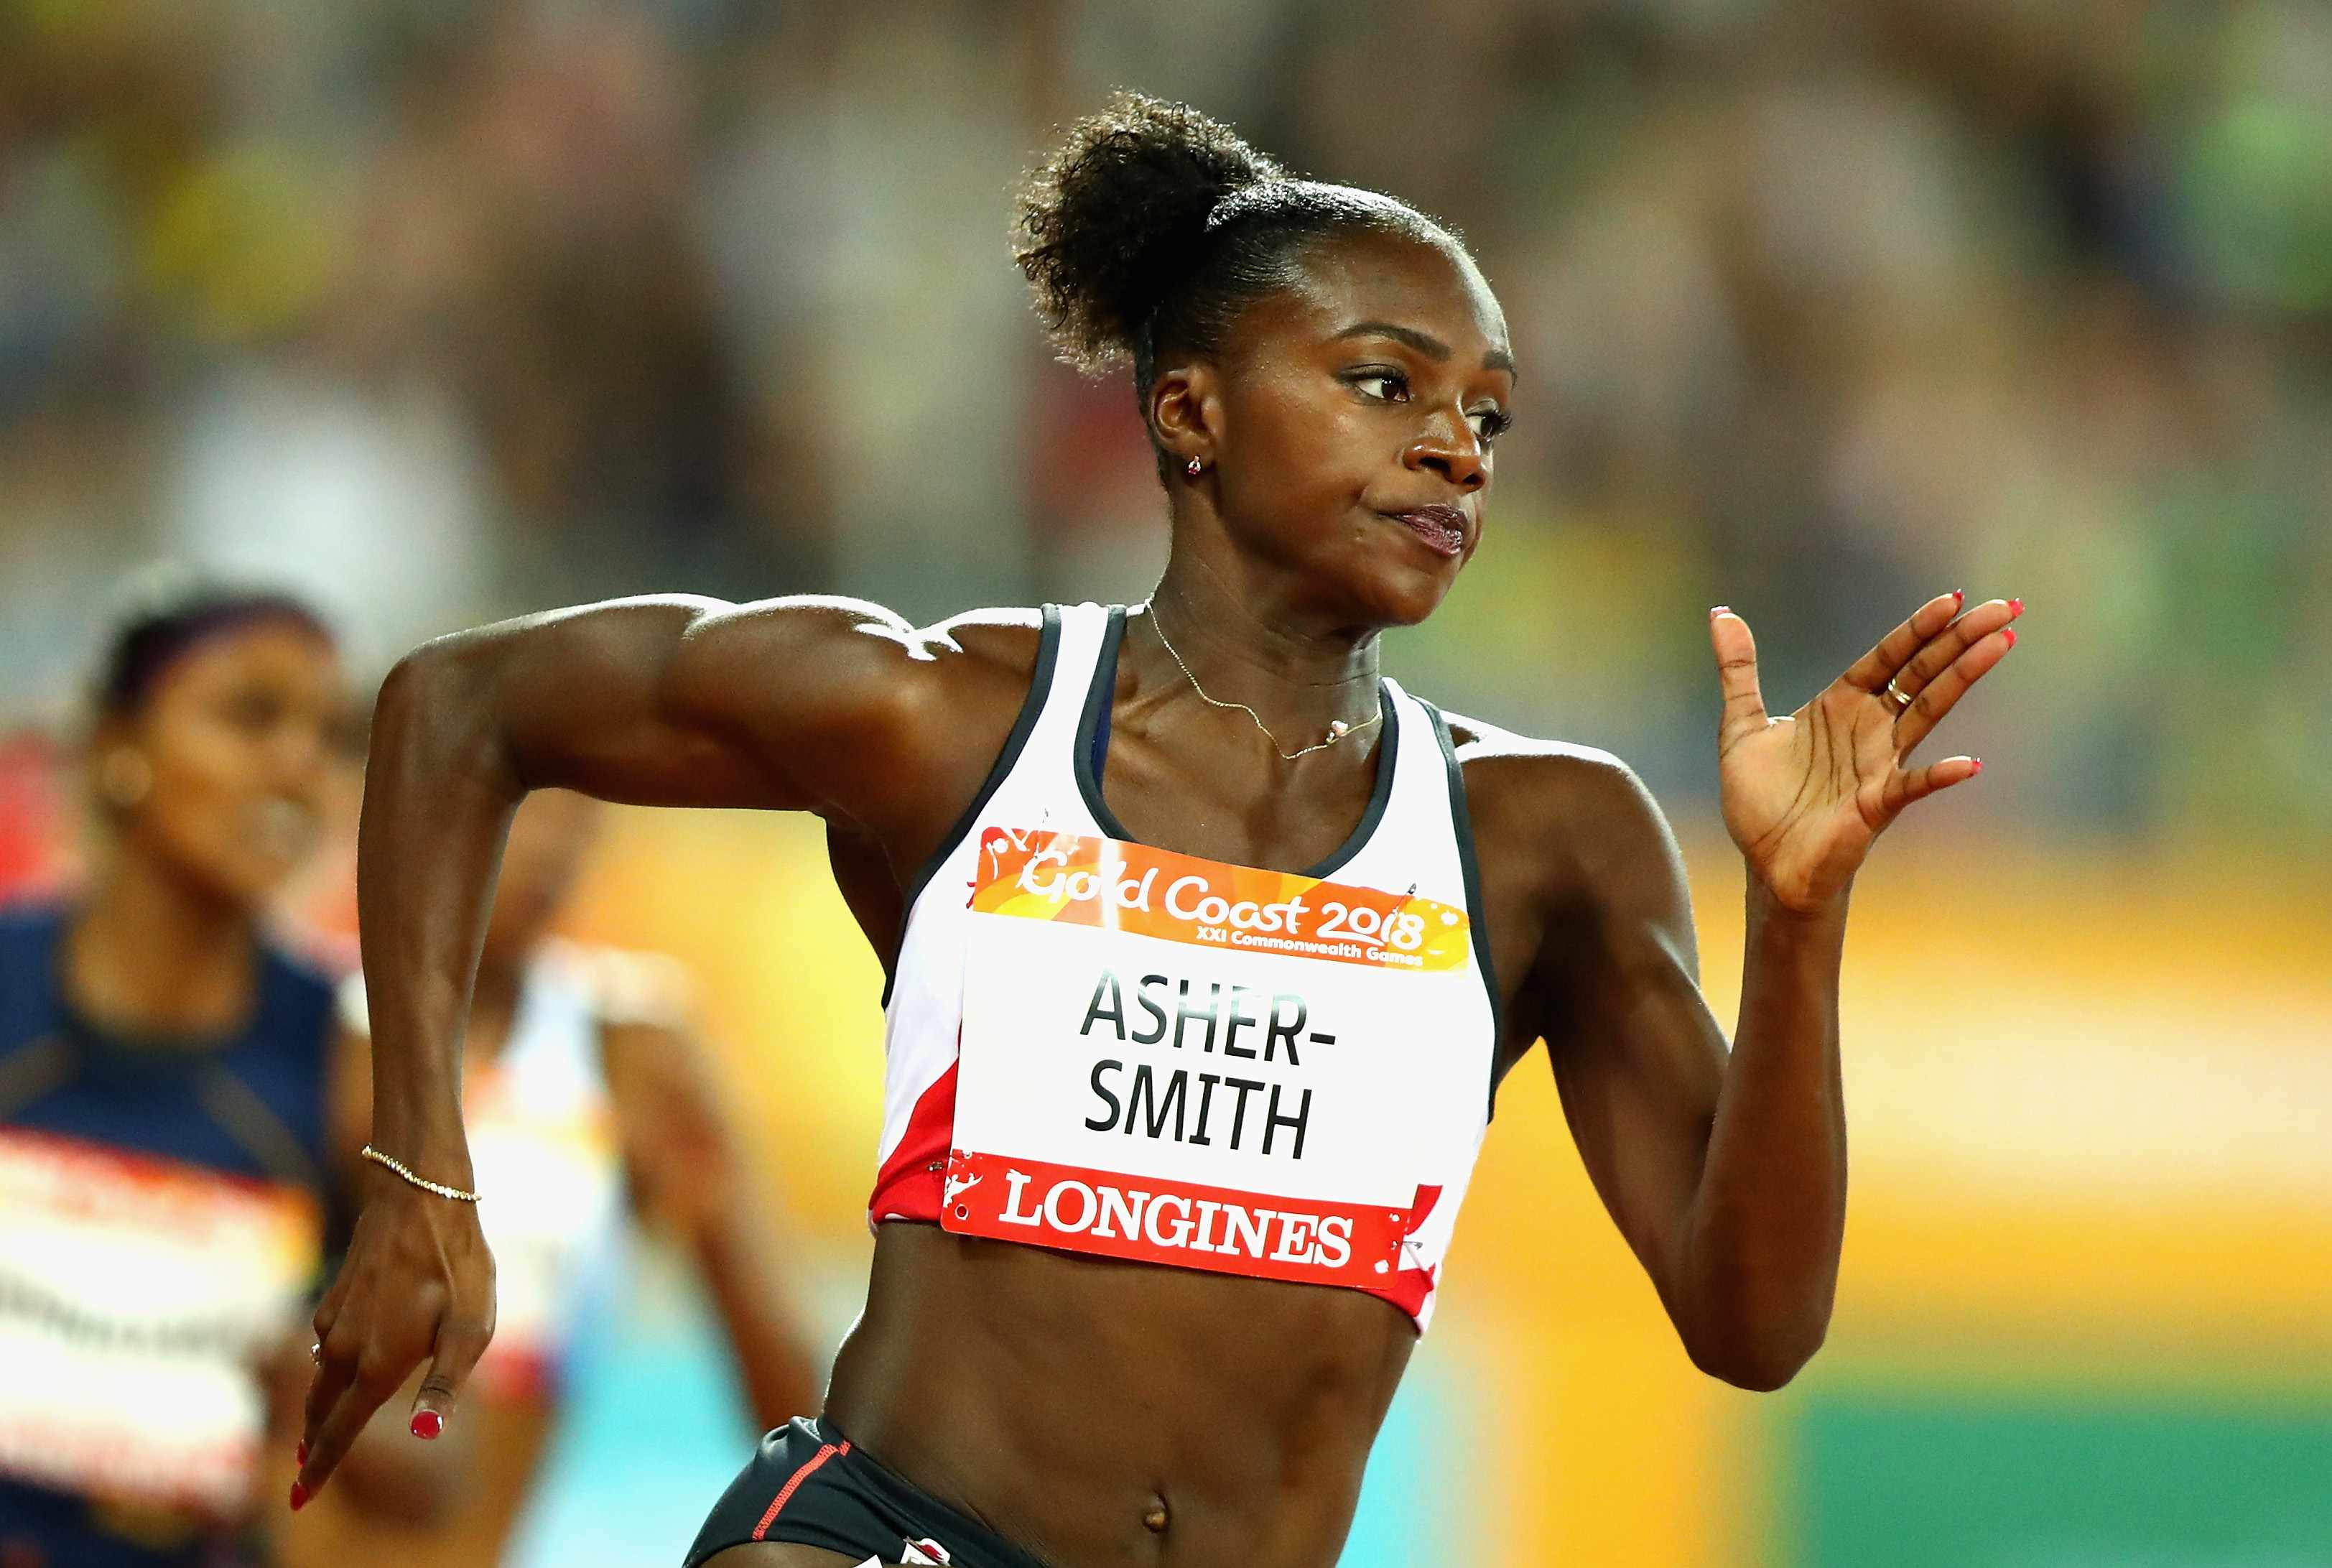 GOLD COAST, AUSTRALIA - APRIL 11:  Dina Asher-Smith of England competes in the Women's 200 metres semi finals during athletics on day seven of the Gold Coast 2018 Commonwealth Games at Carrara Stadium on April 11, 2018 on the Gold Coast, Australia.  (Photo by Dean Mouhtaropoulos/Getty Images)  TL